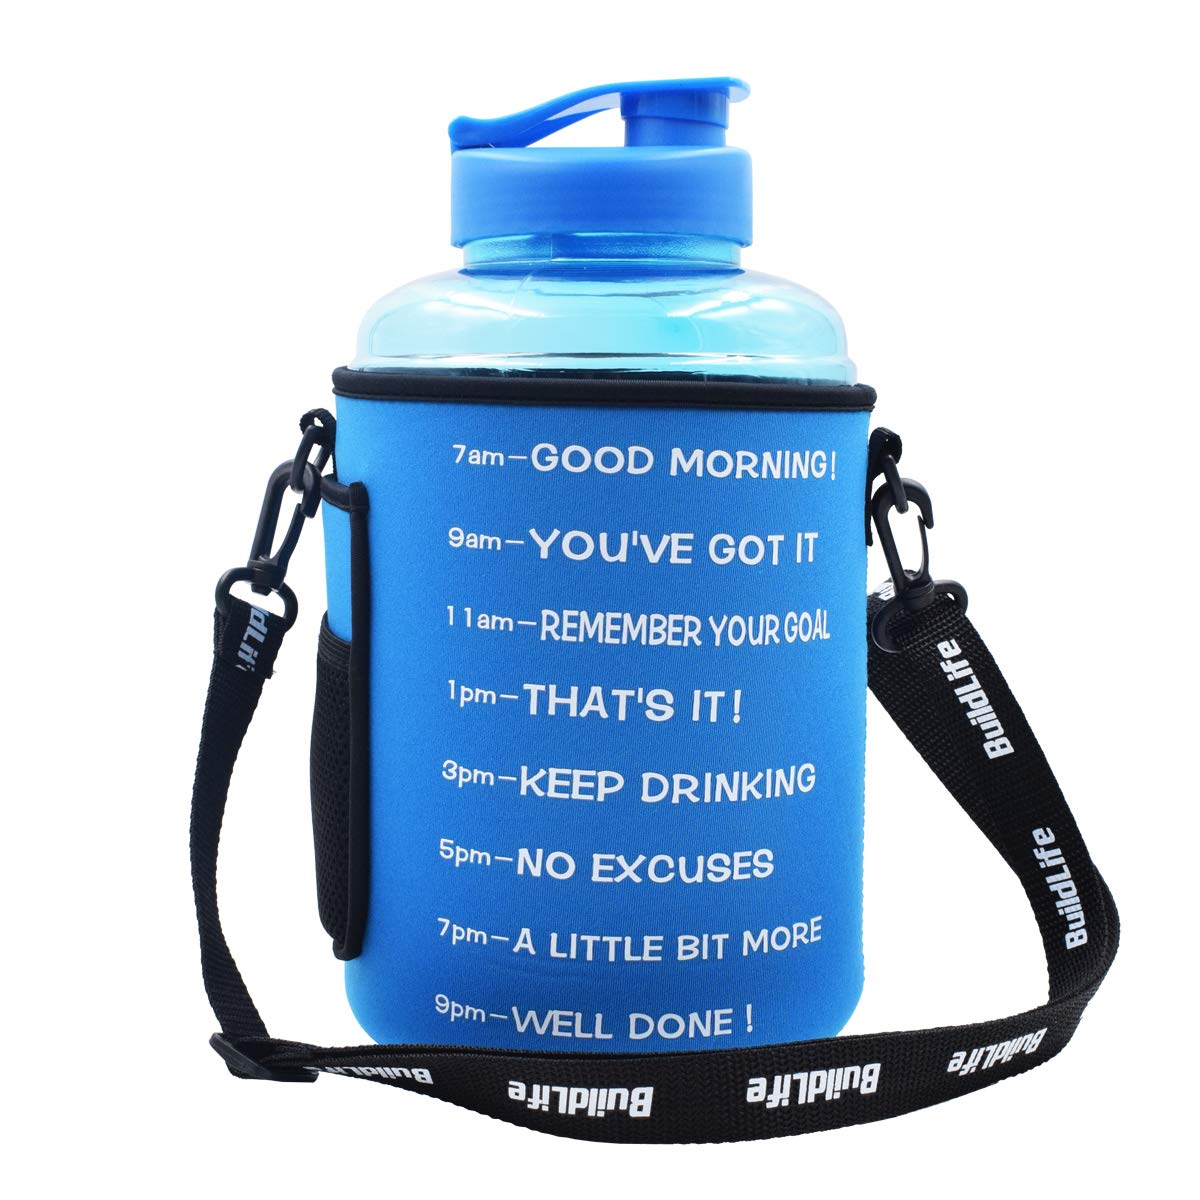 BuildLife 1 Gallon(128OZ) Sports Water Bottle Inspirational Fitness Workout Wide Mouth with Time Marker and Sleeve for Measuring Your H2O Intake BPA Free (1 Gallon, 1 Gallon-Blue with Sleeve)